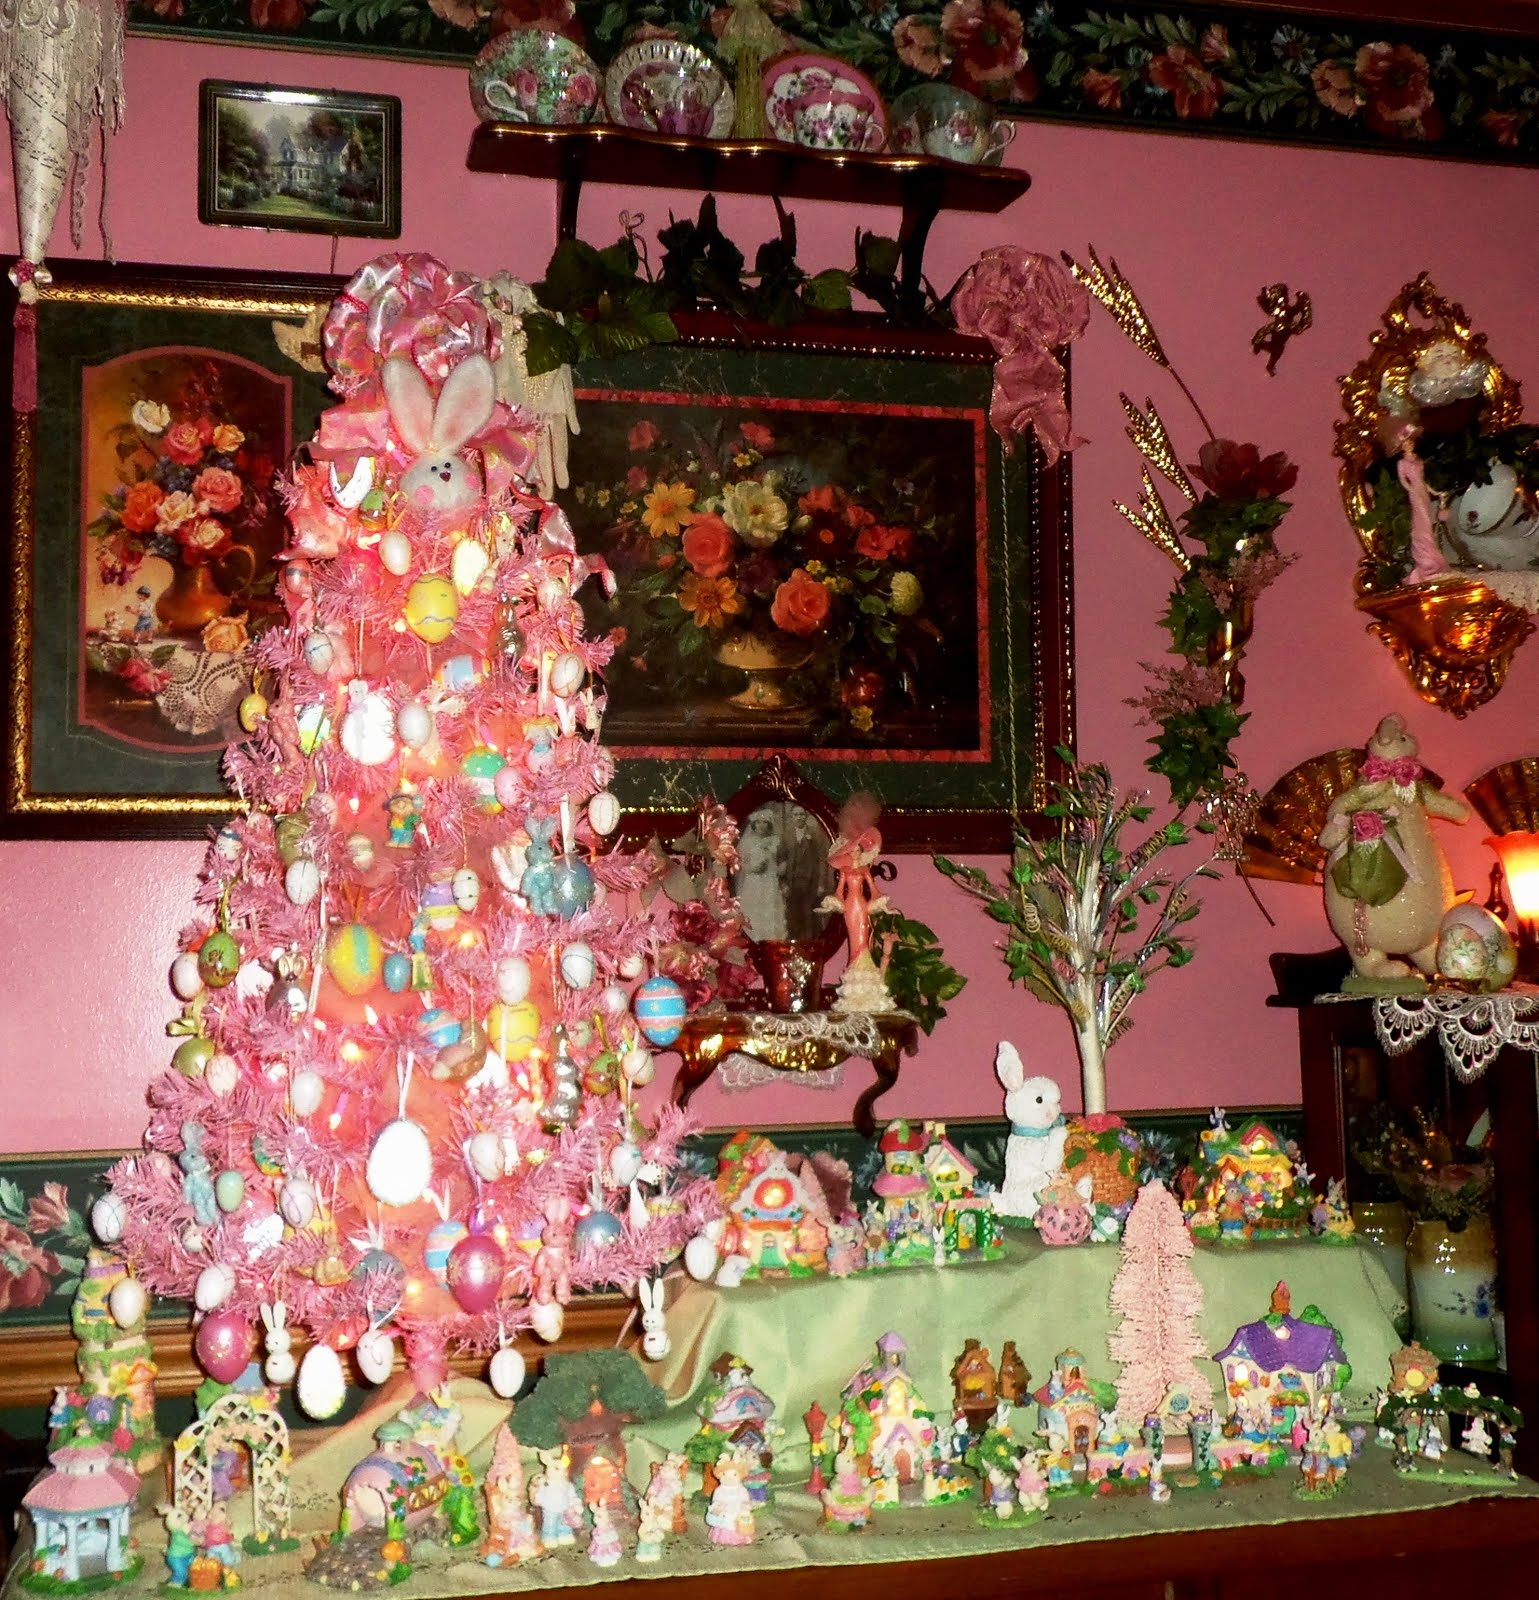 Pink Easter Tree and Bunny Village in the Dining Room, 2016